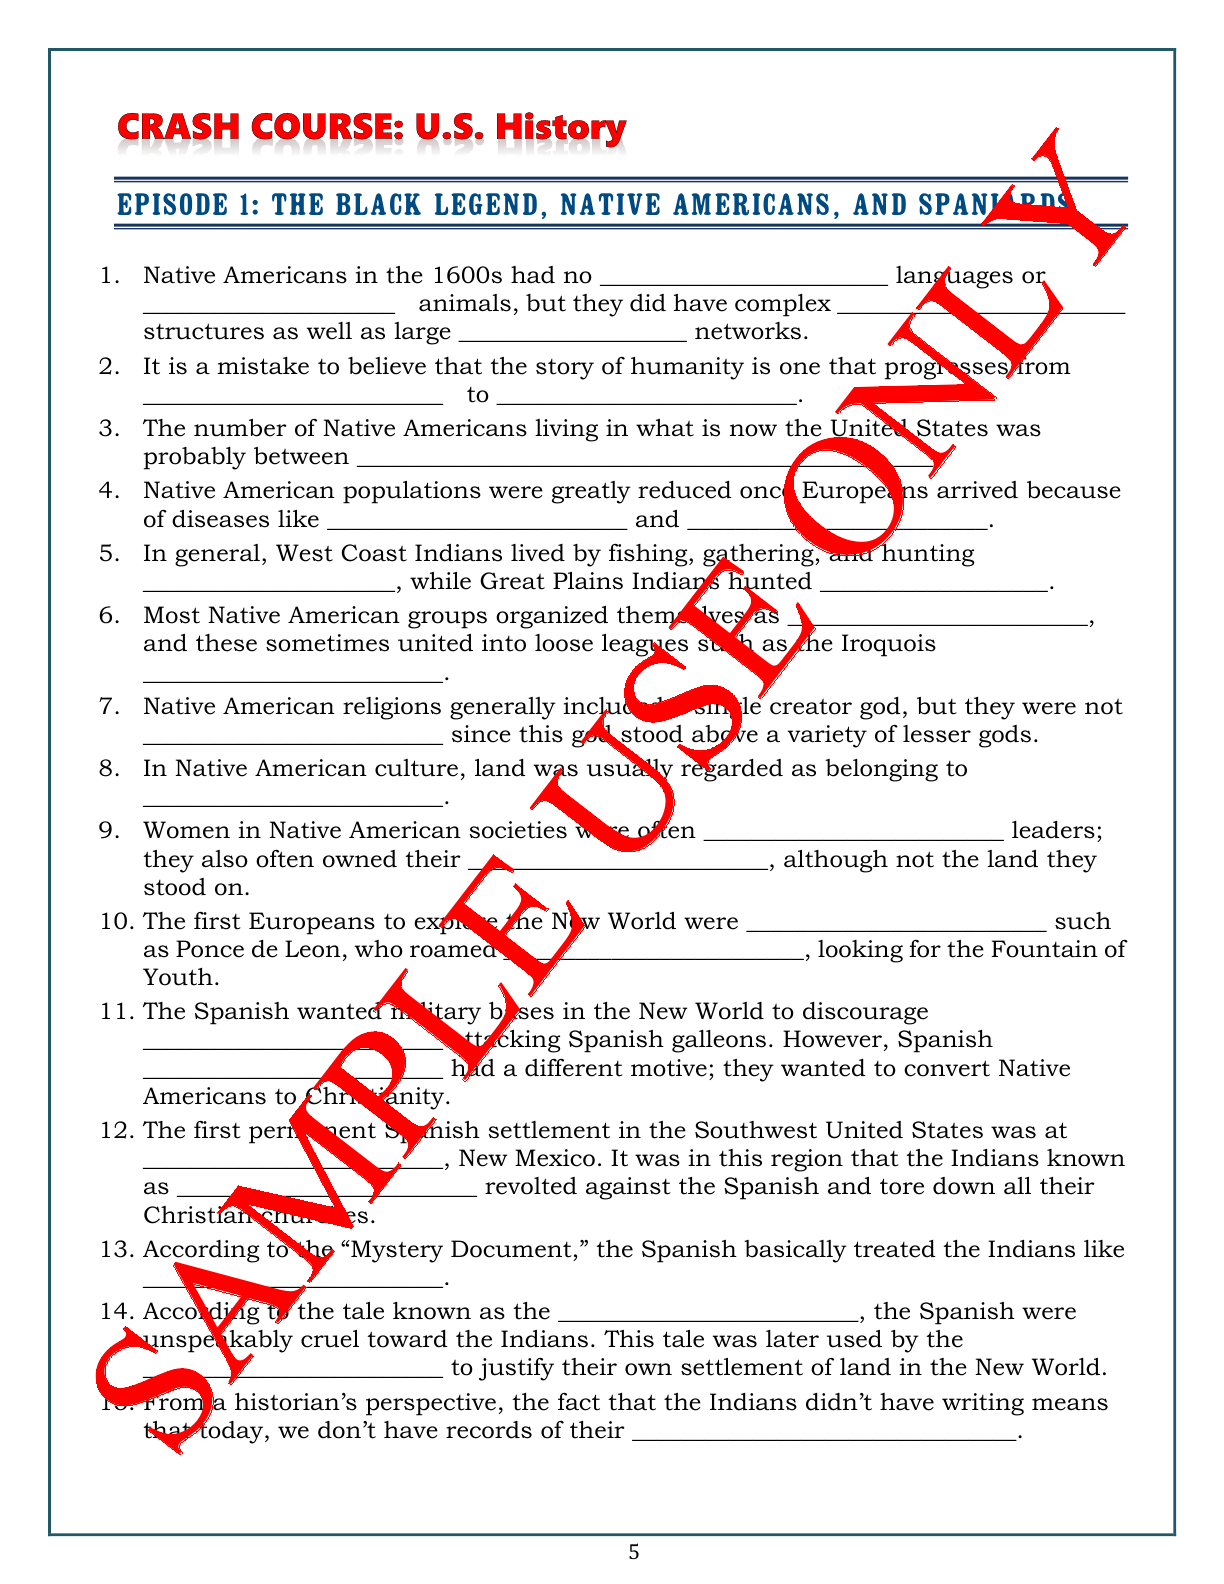 small resolution of Crash Course U.S. History Worksheets make teaching \u0026 learning fun! A mix of  T/F